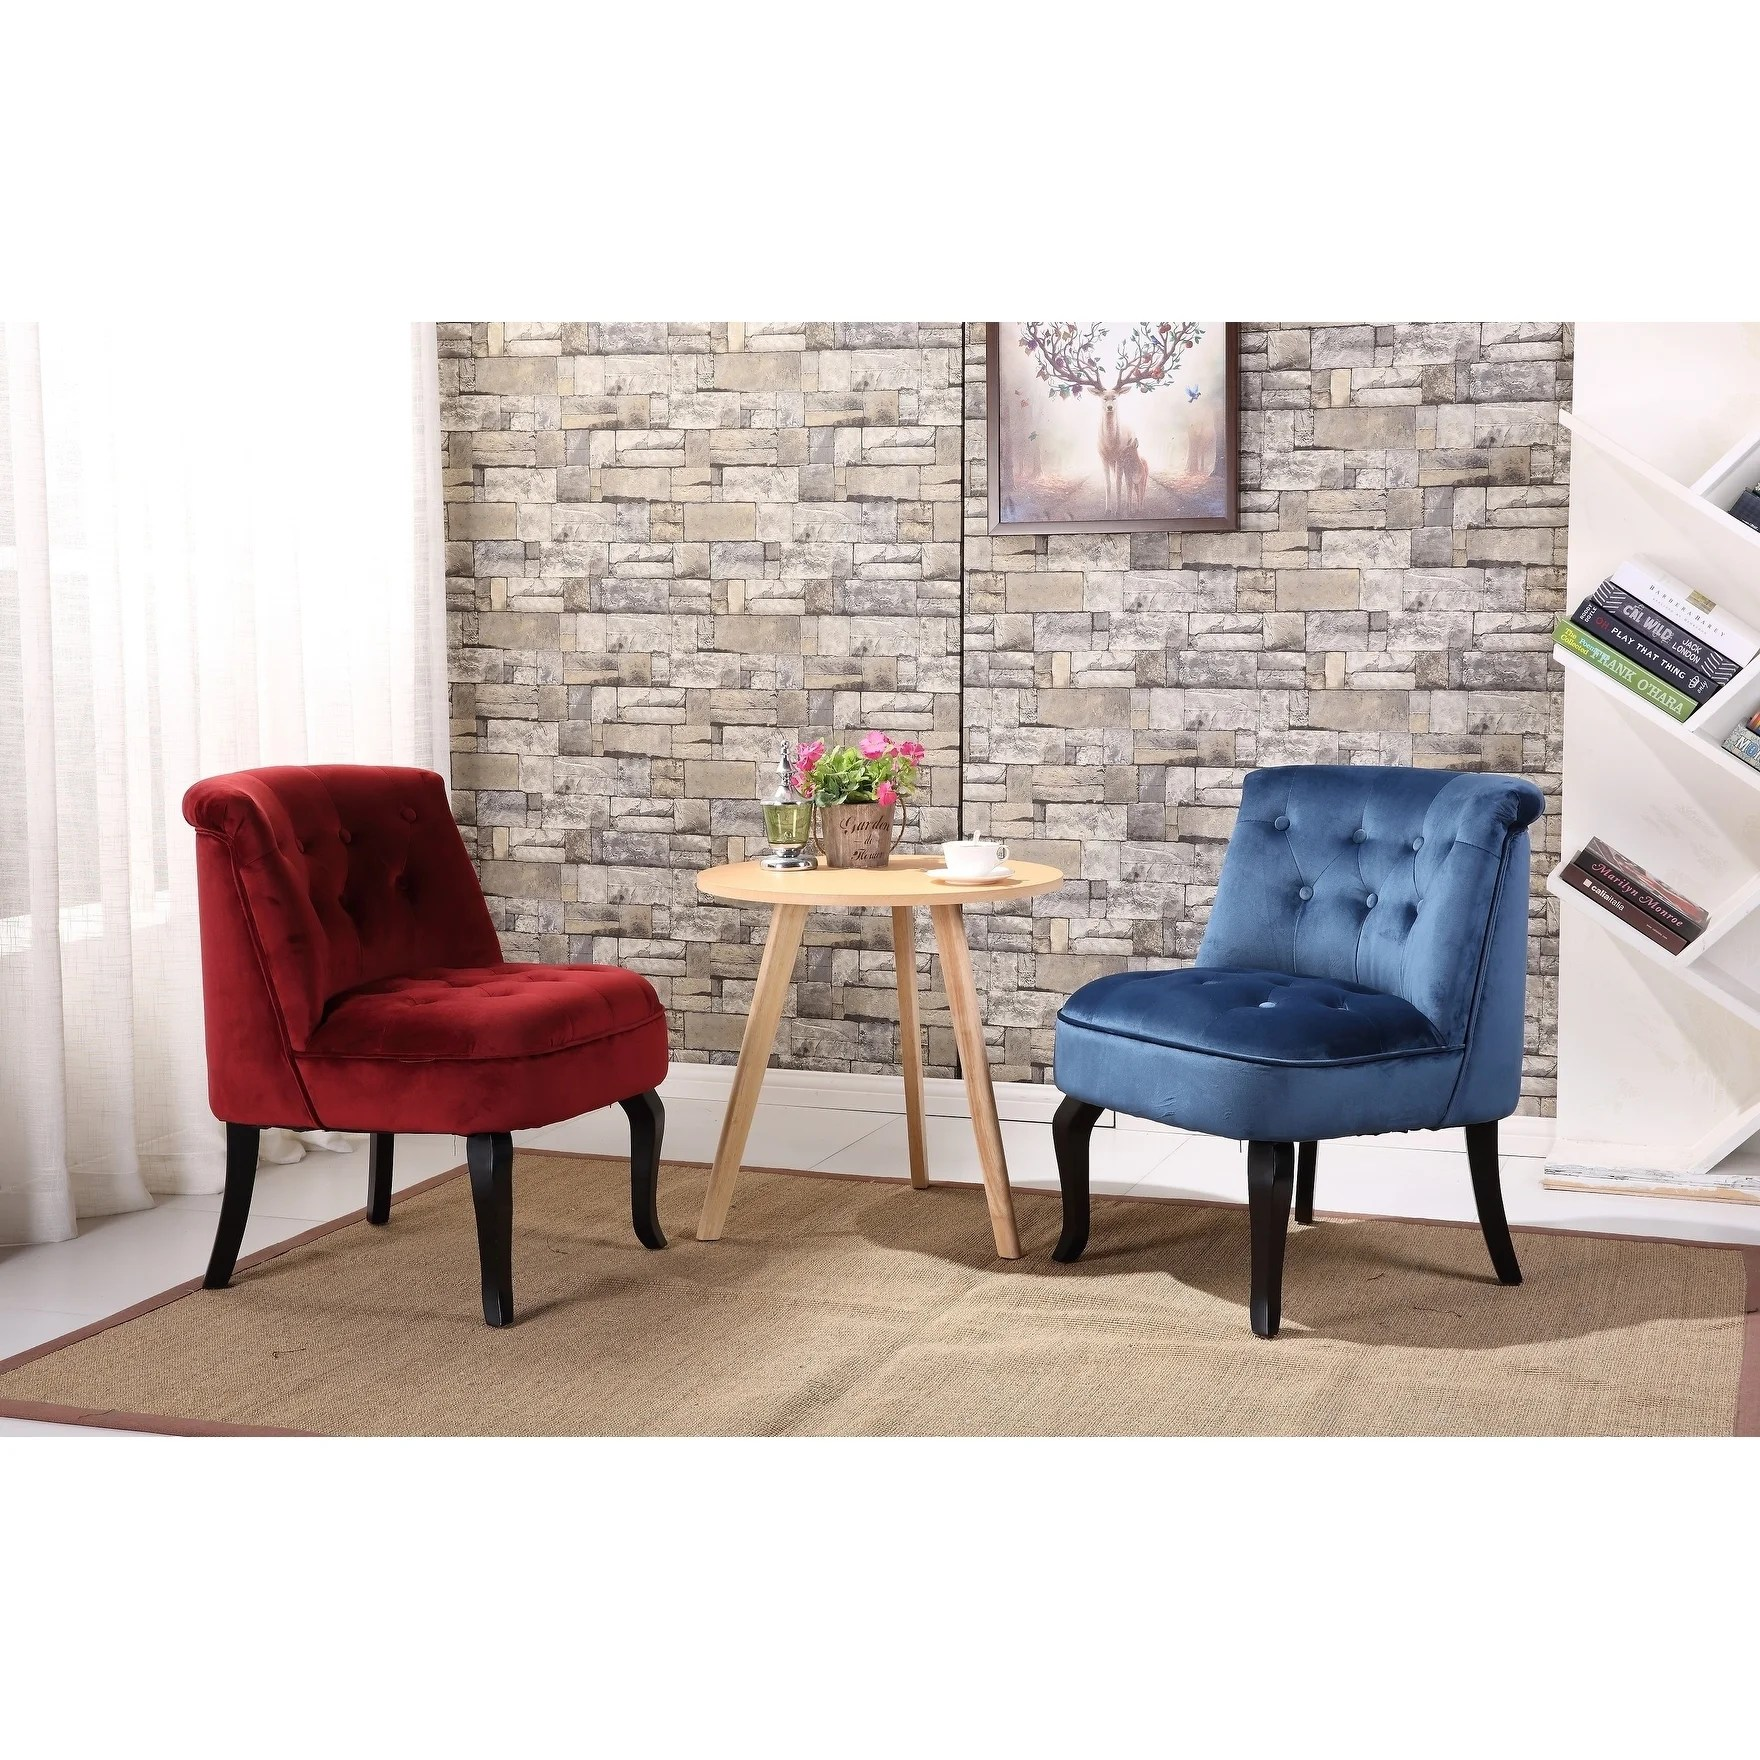 Chevalier Royal Side Chair Royal Suite Collection By Ocean Bridge